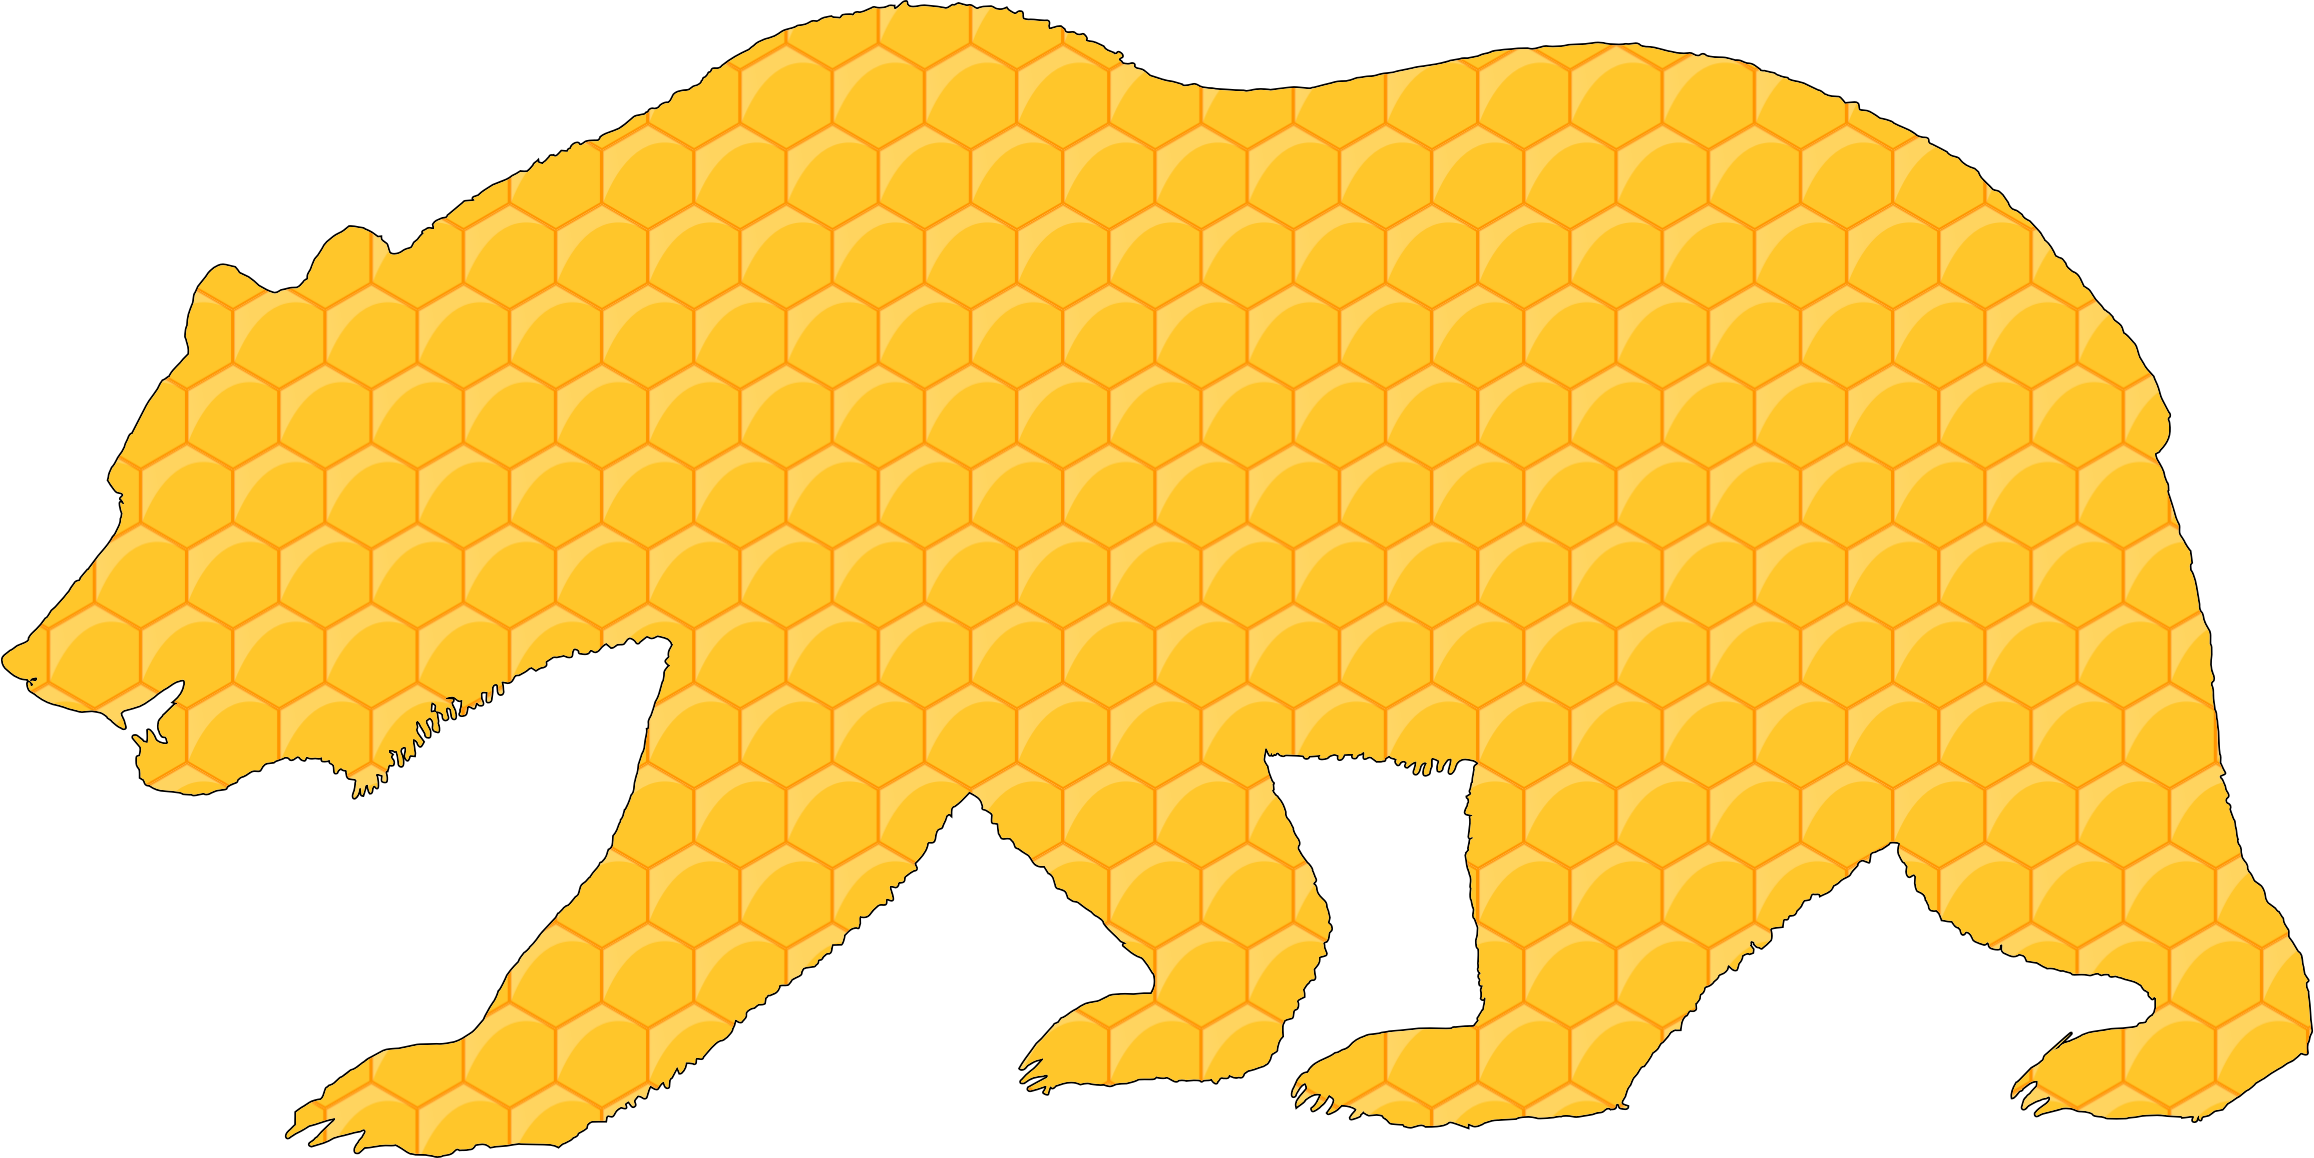 Honeycomb clipart hexagon. Bear with stroke icons